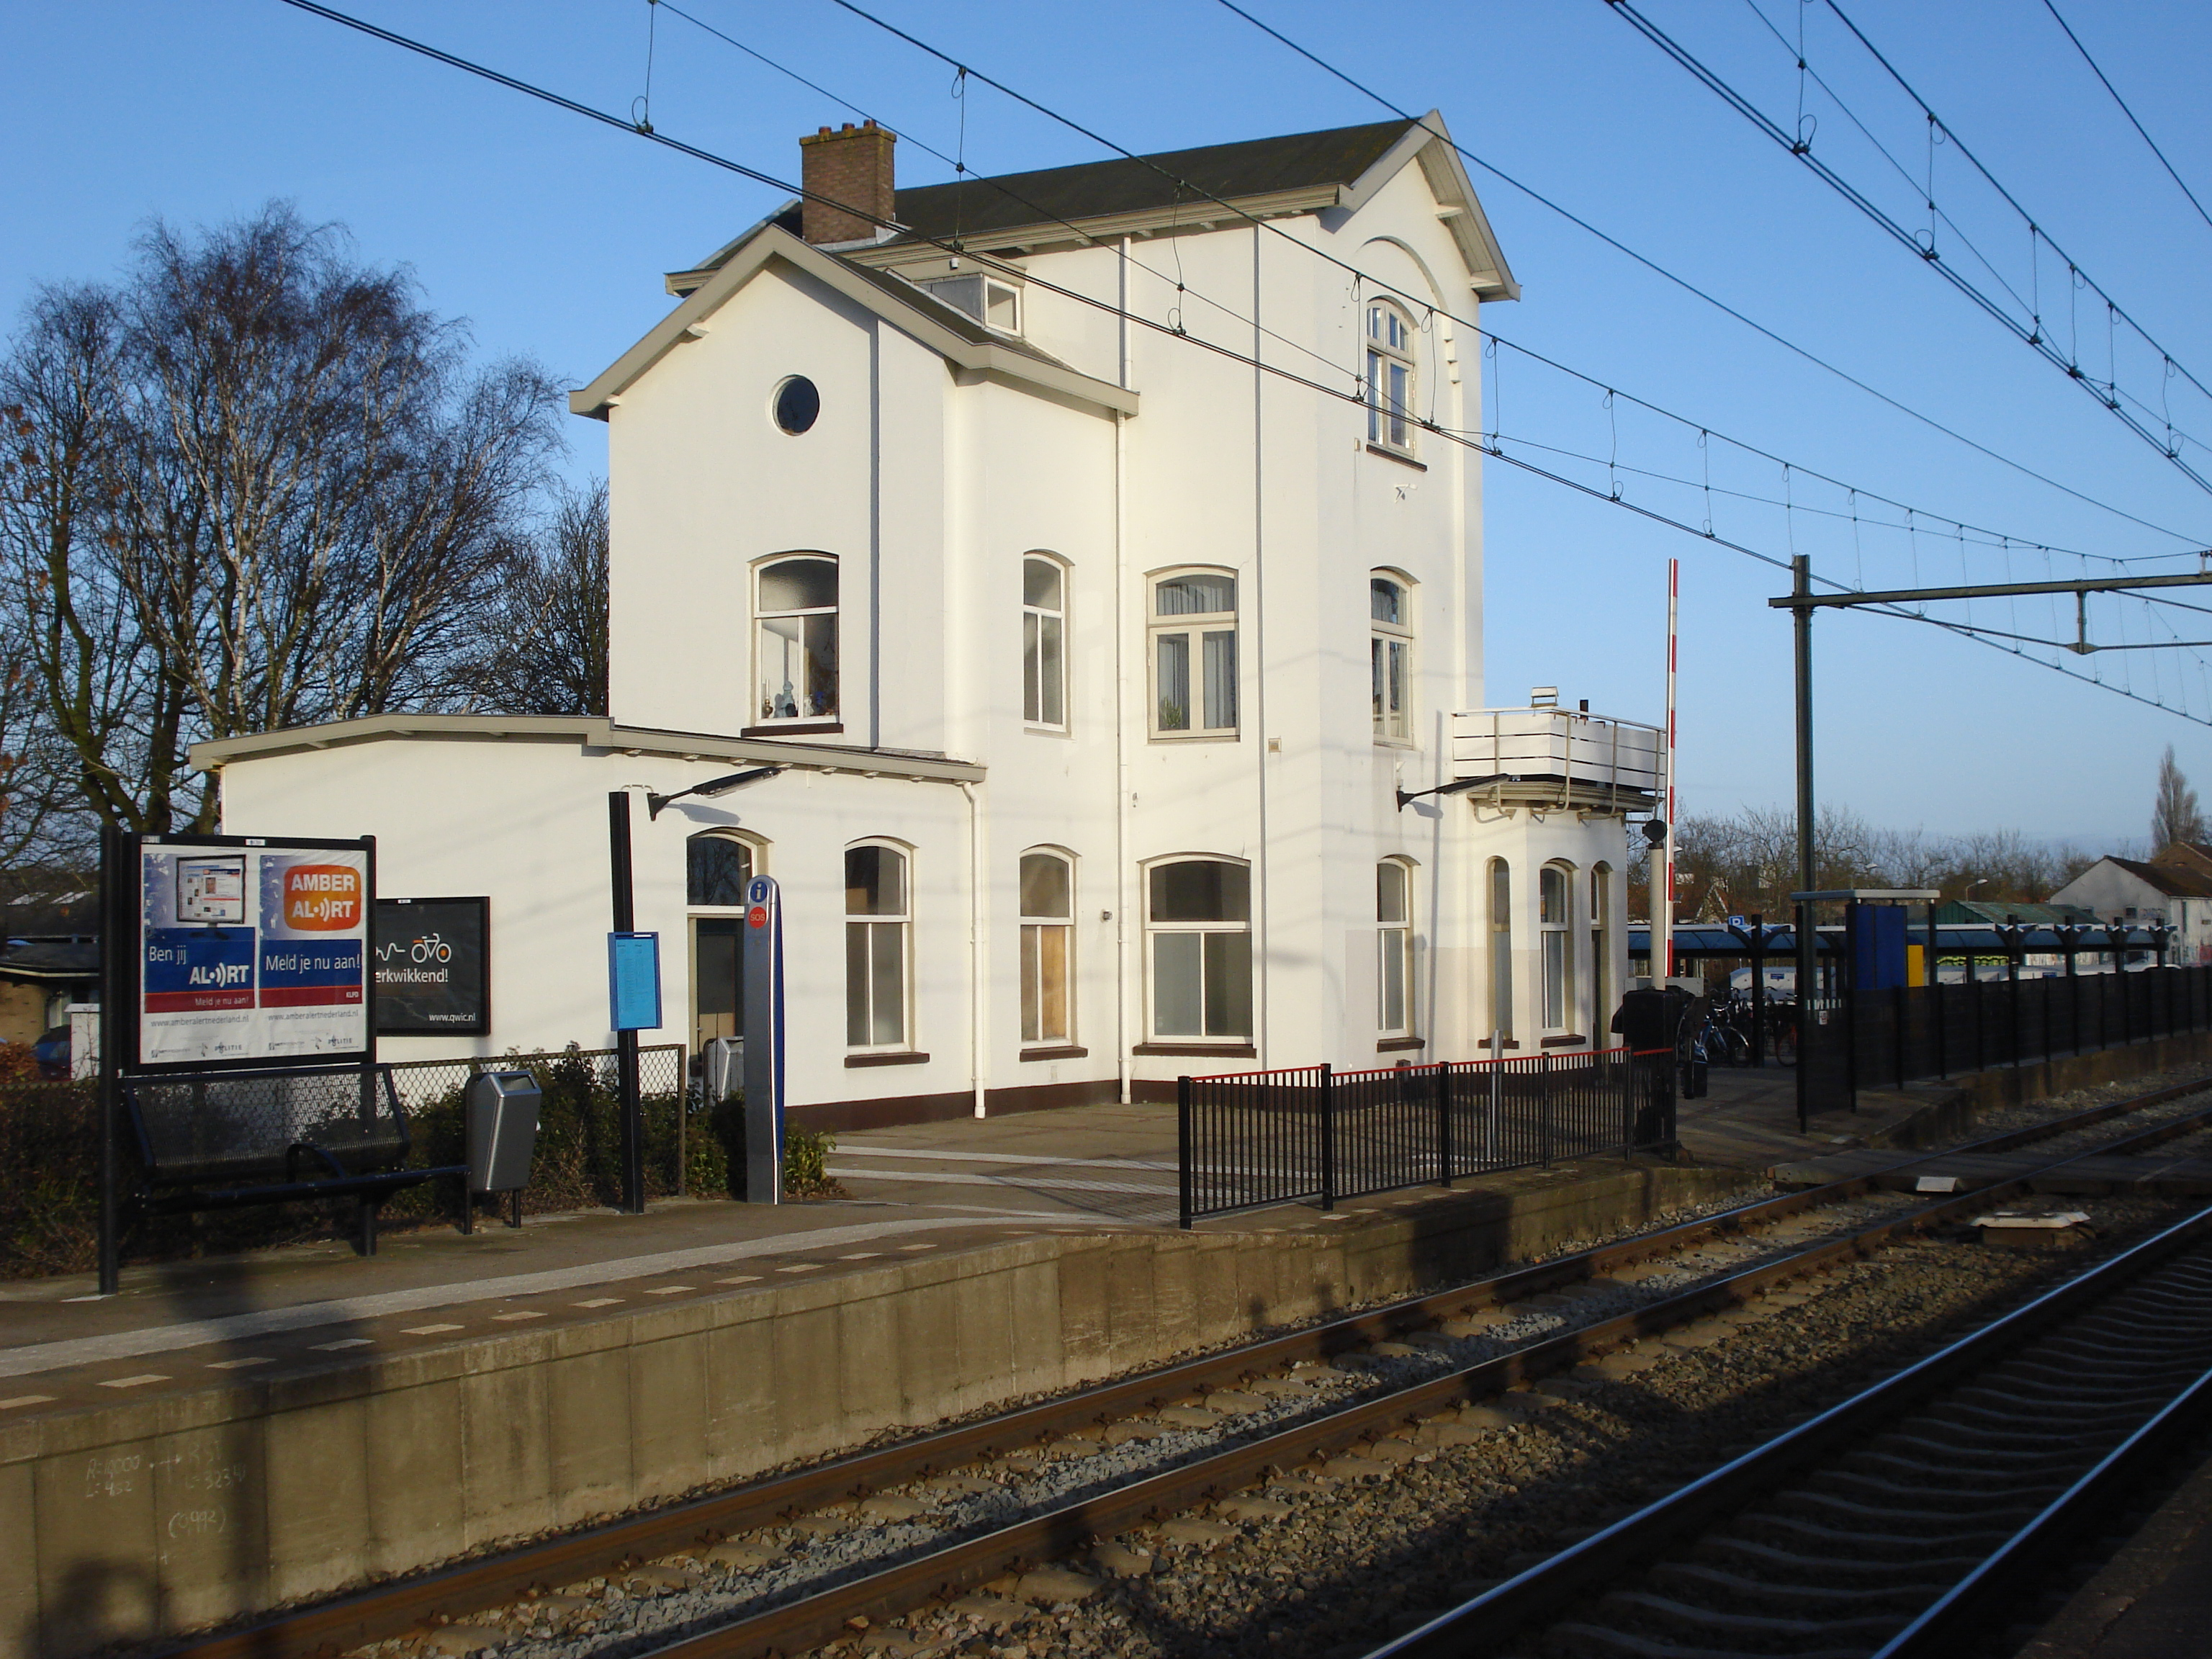 English: Kapelle (Zeeland NL) train station, r...